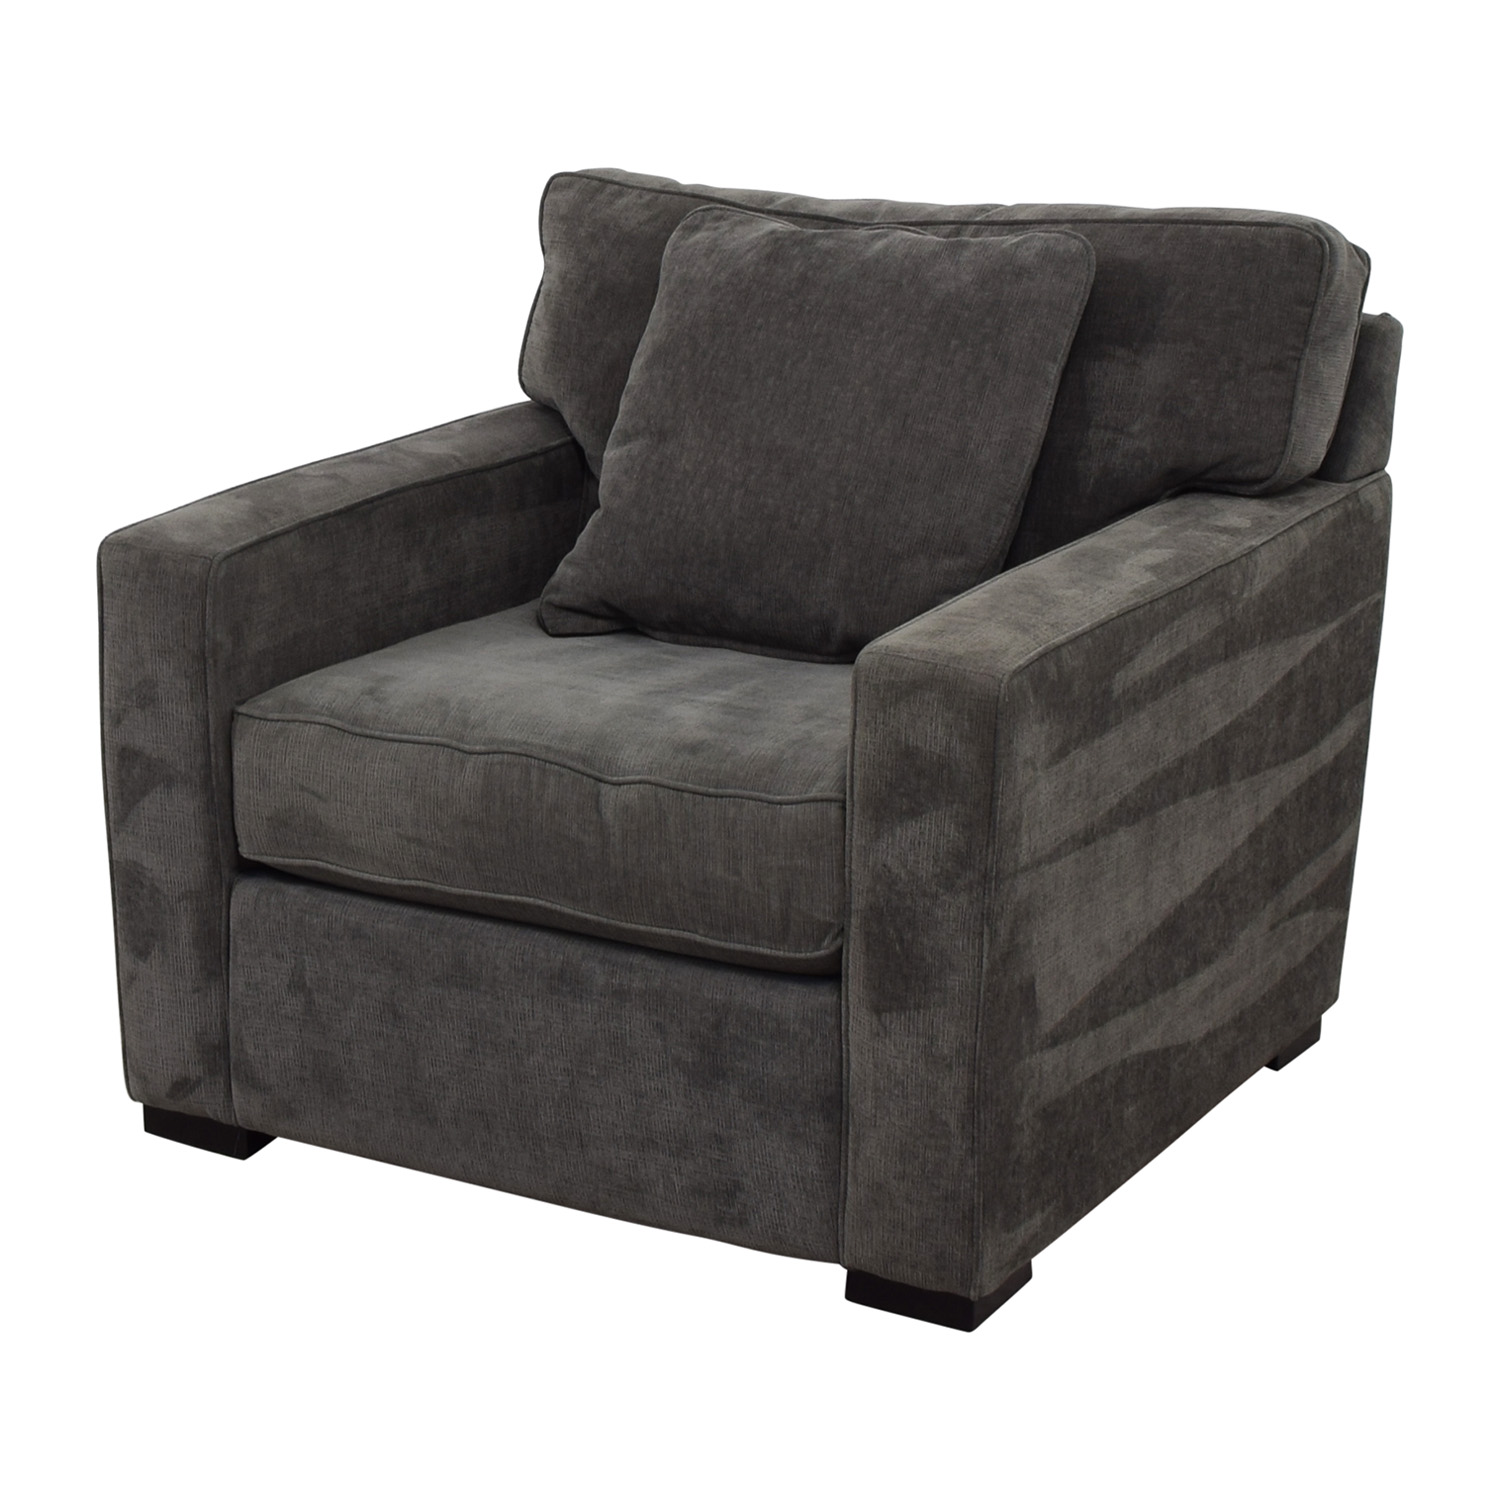 ... Shop Macys Macys Radley Grey Accent Chair Online ...